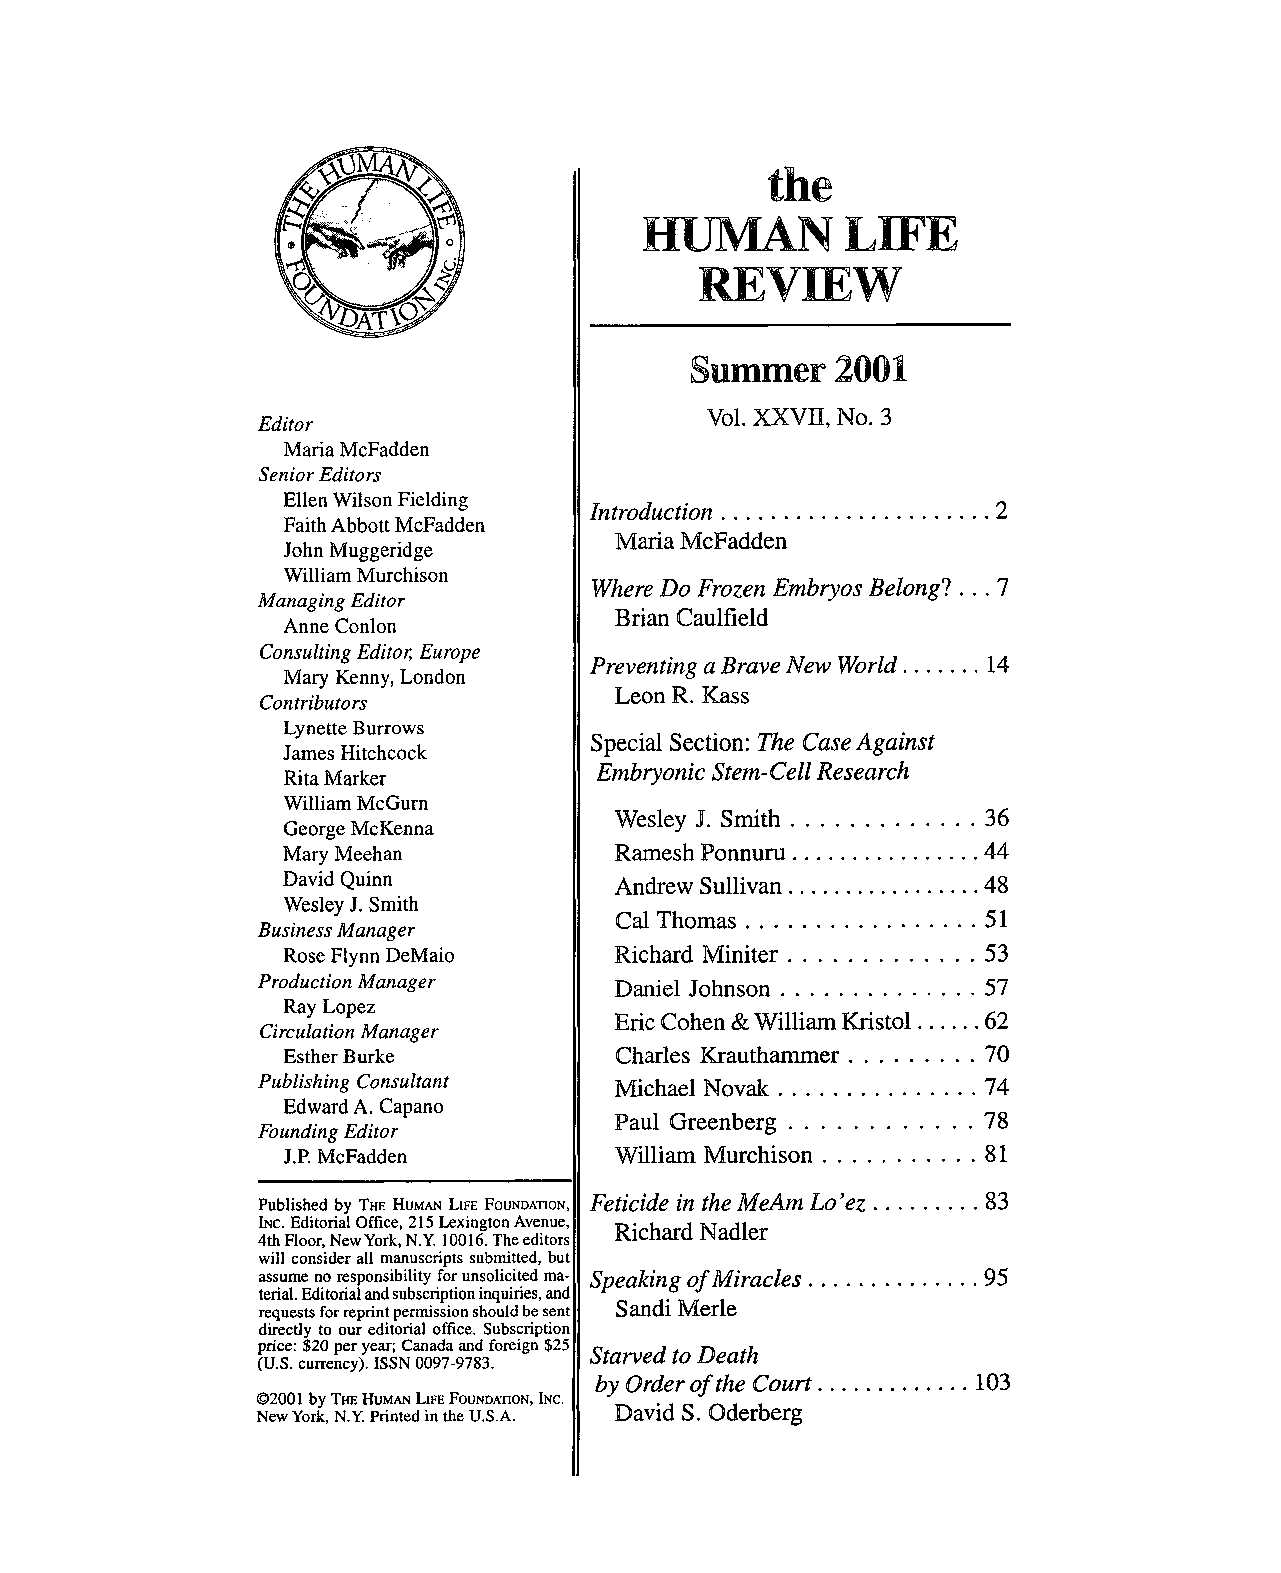 The Human Life Review Summer 2001 - The Human Life Review